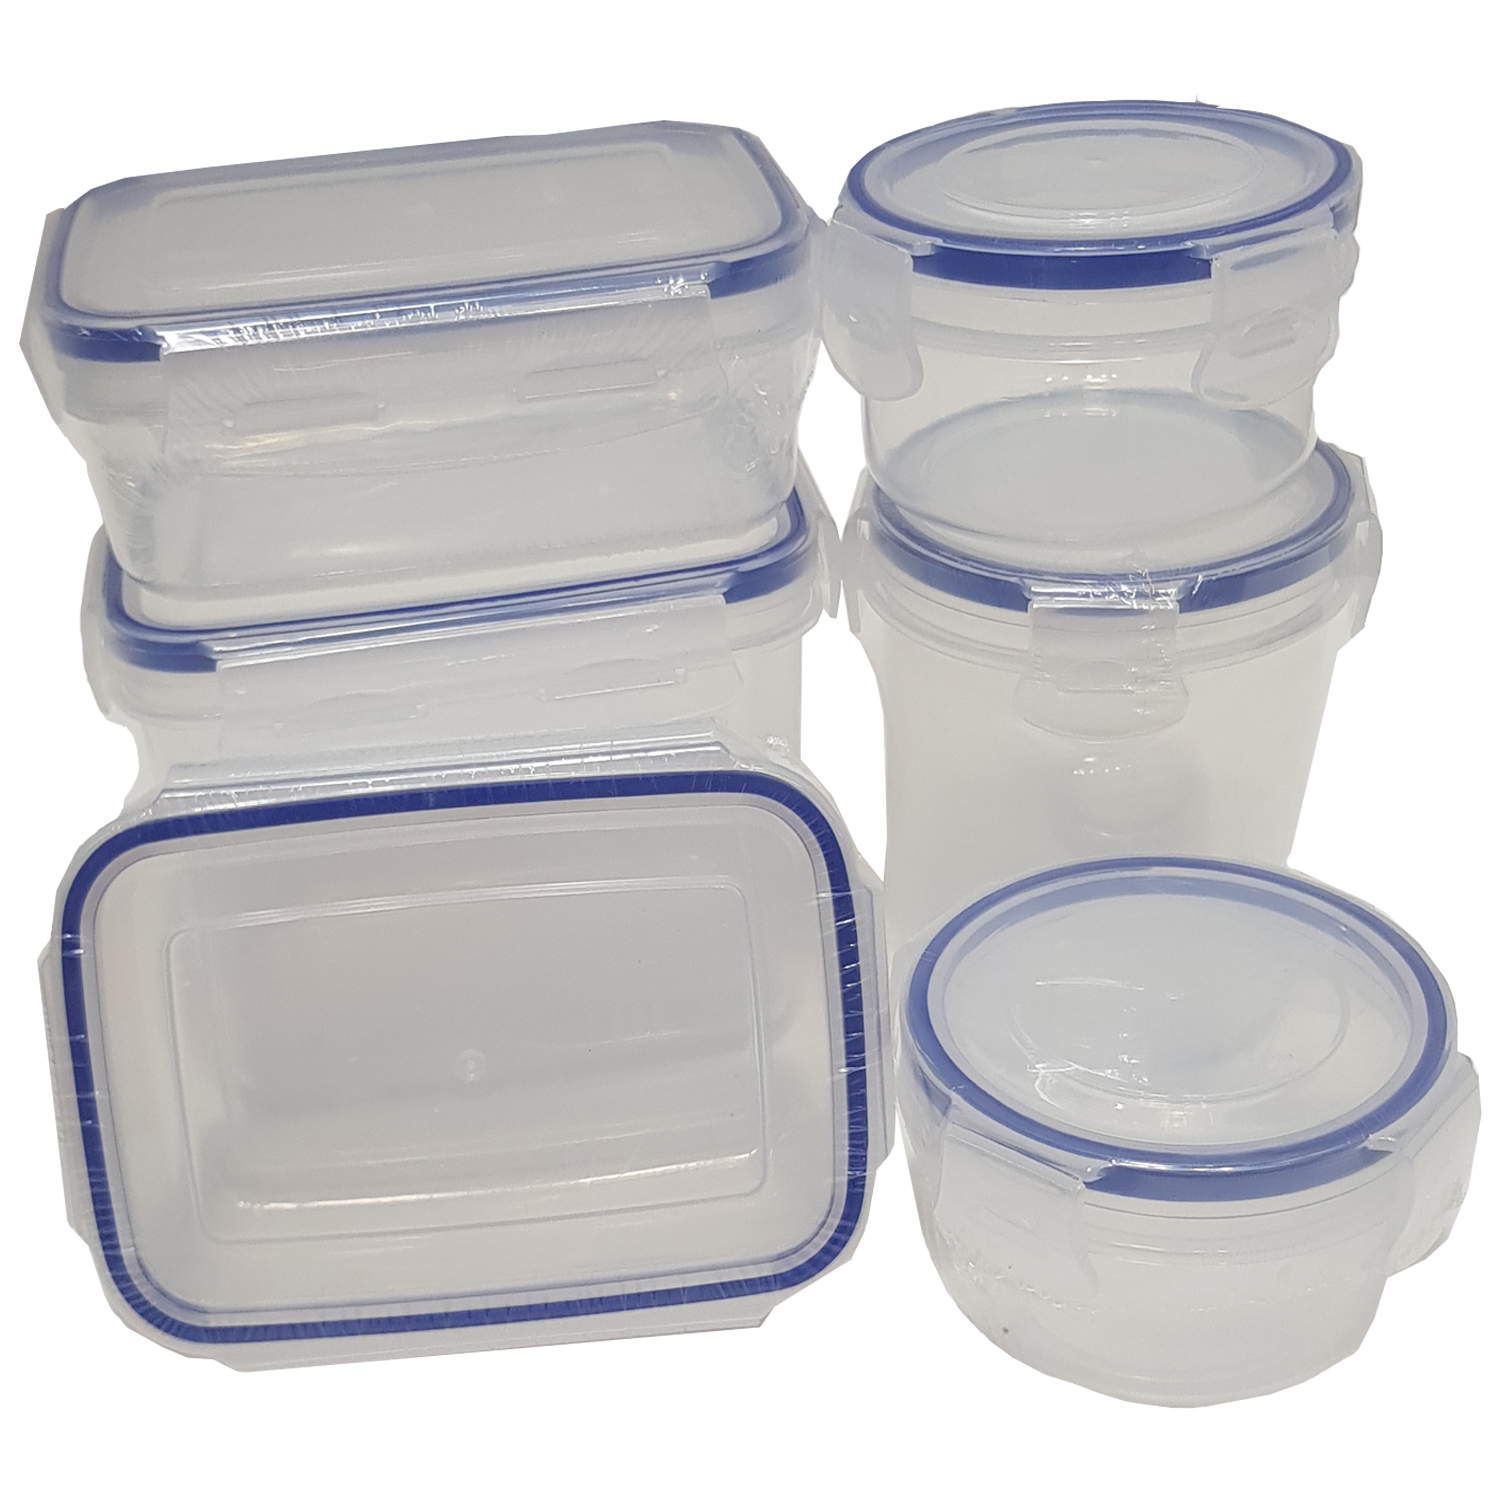 6pcs Food Container #31807089016